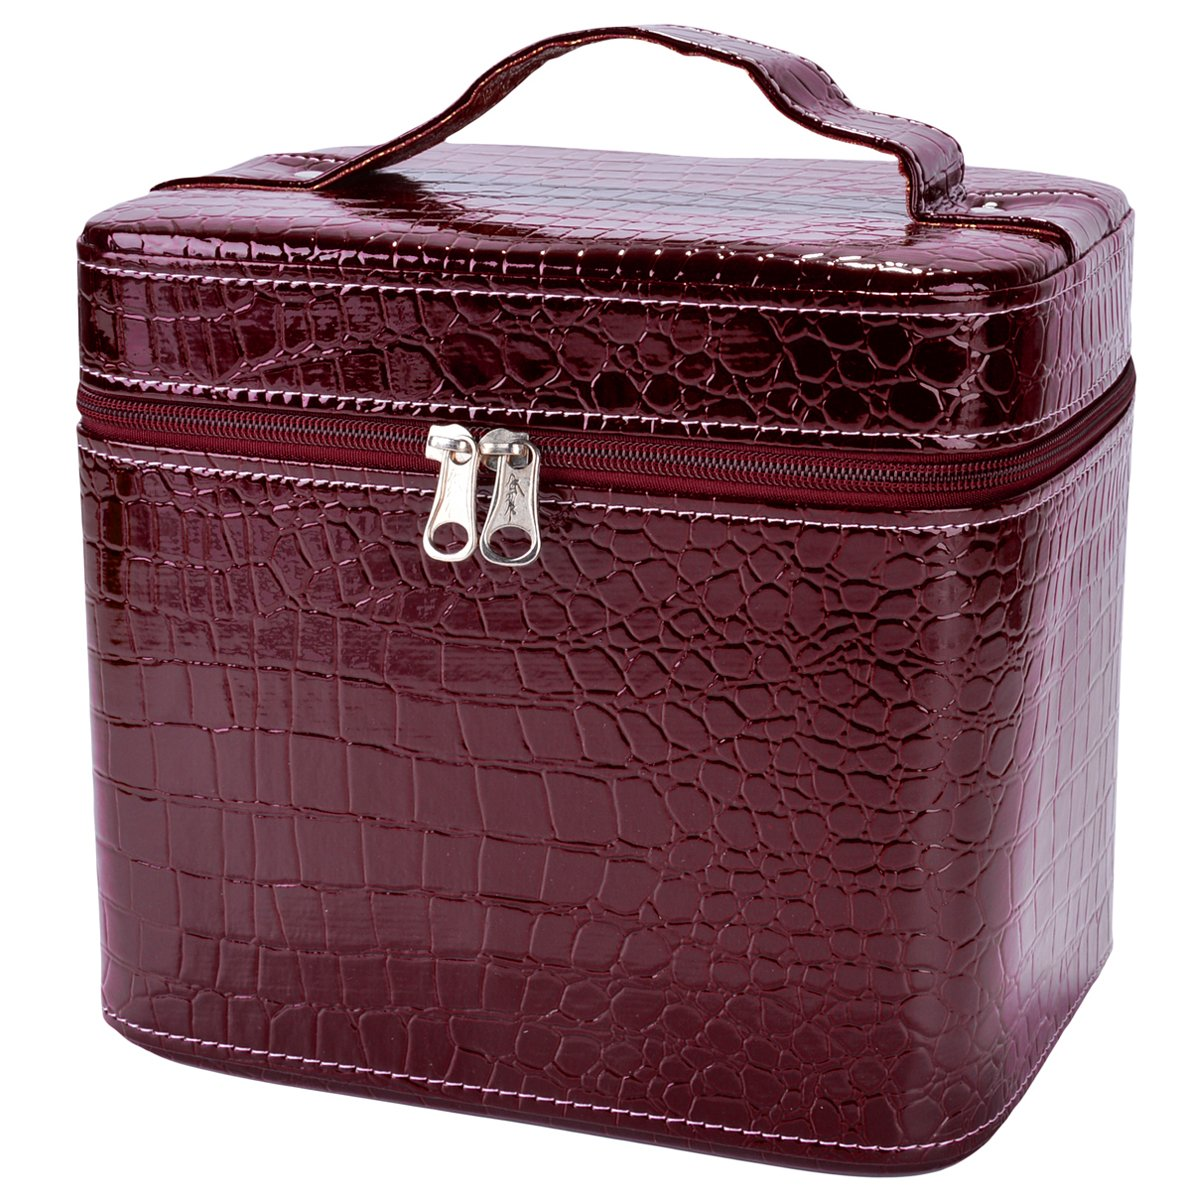 Train Case,COOFIT Portable Travel Makeup Case Crocodile Pattern Leather Beauty Box for Women Large Red